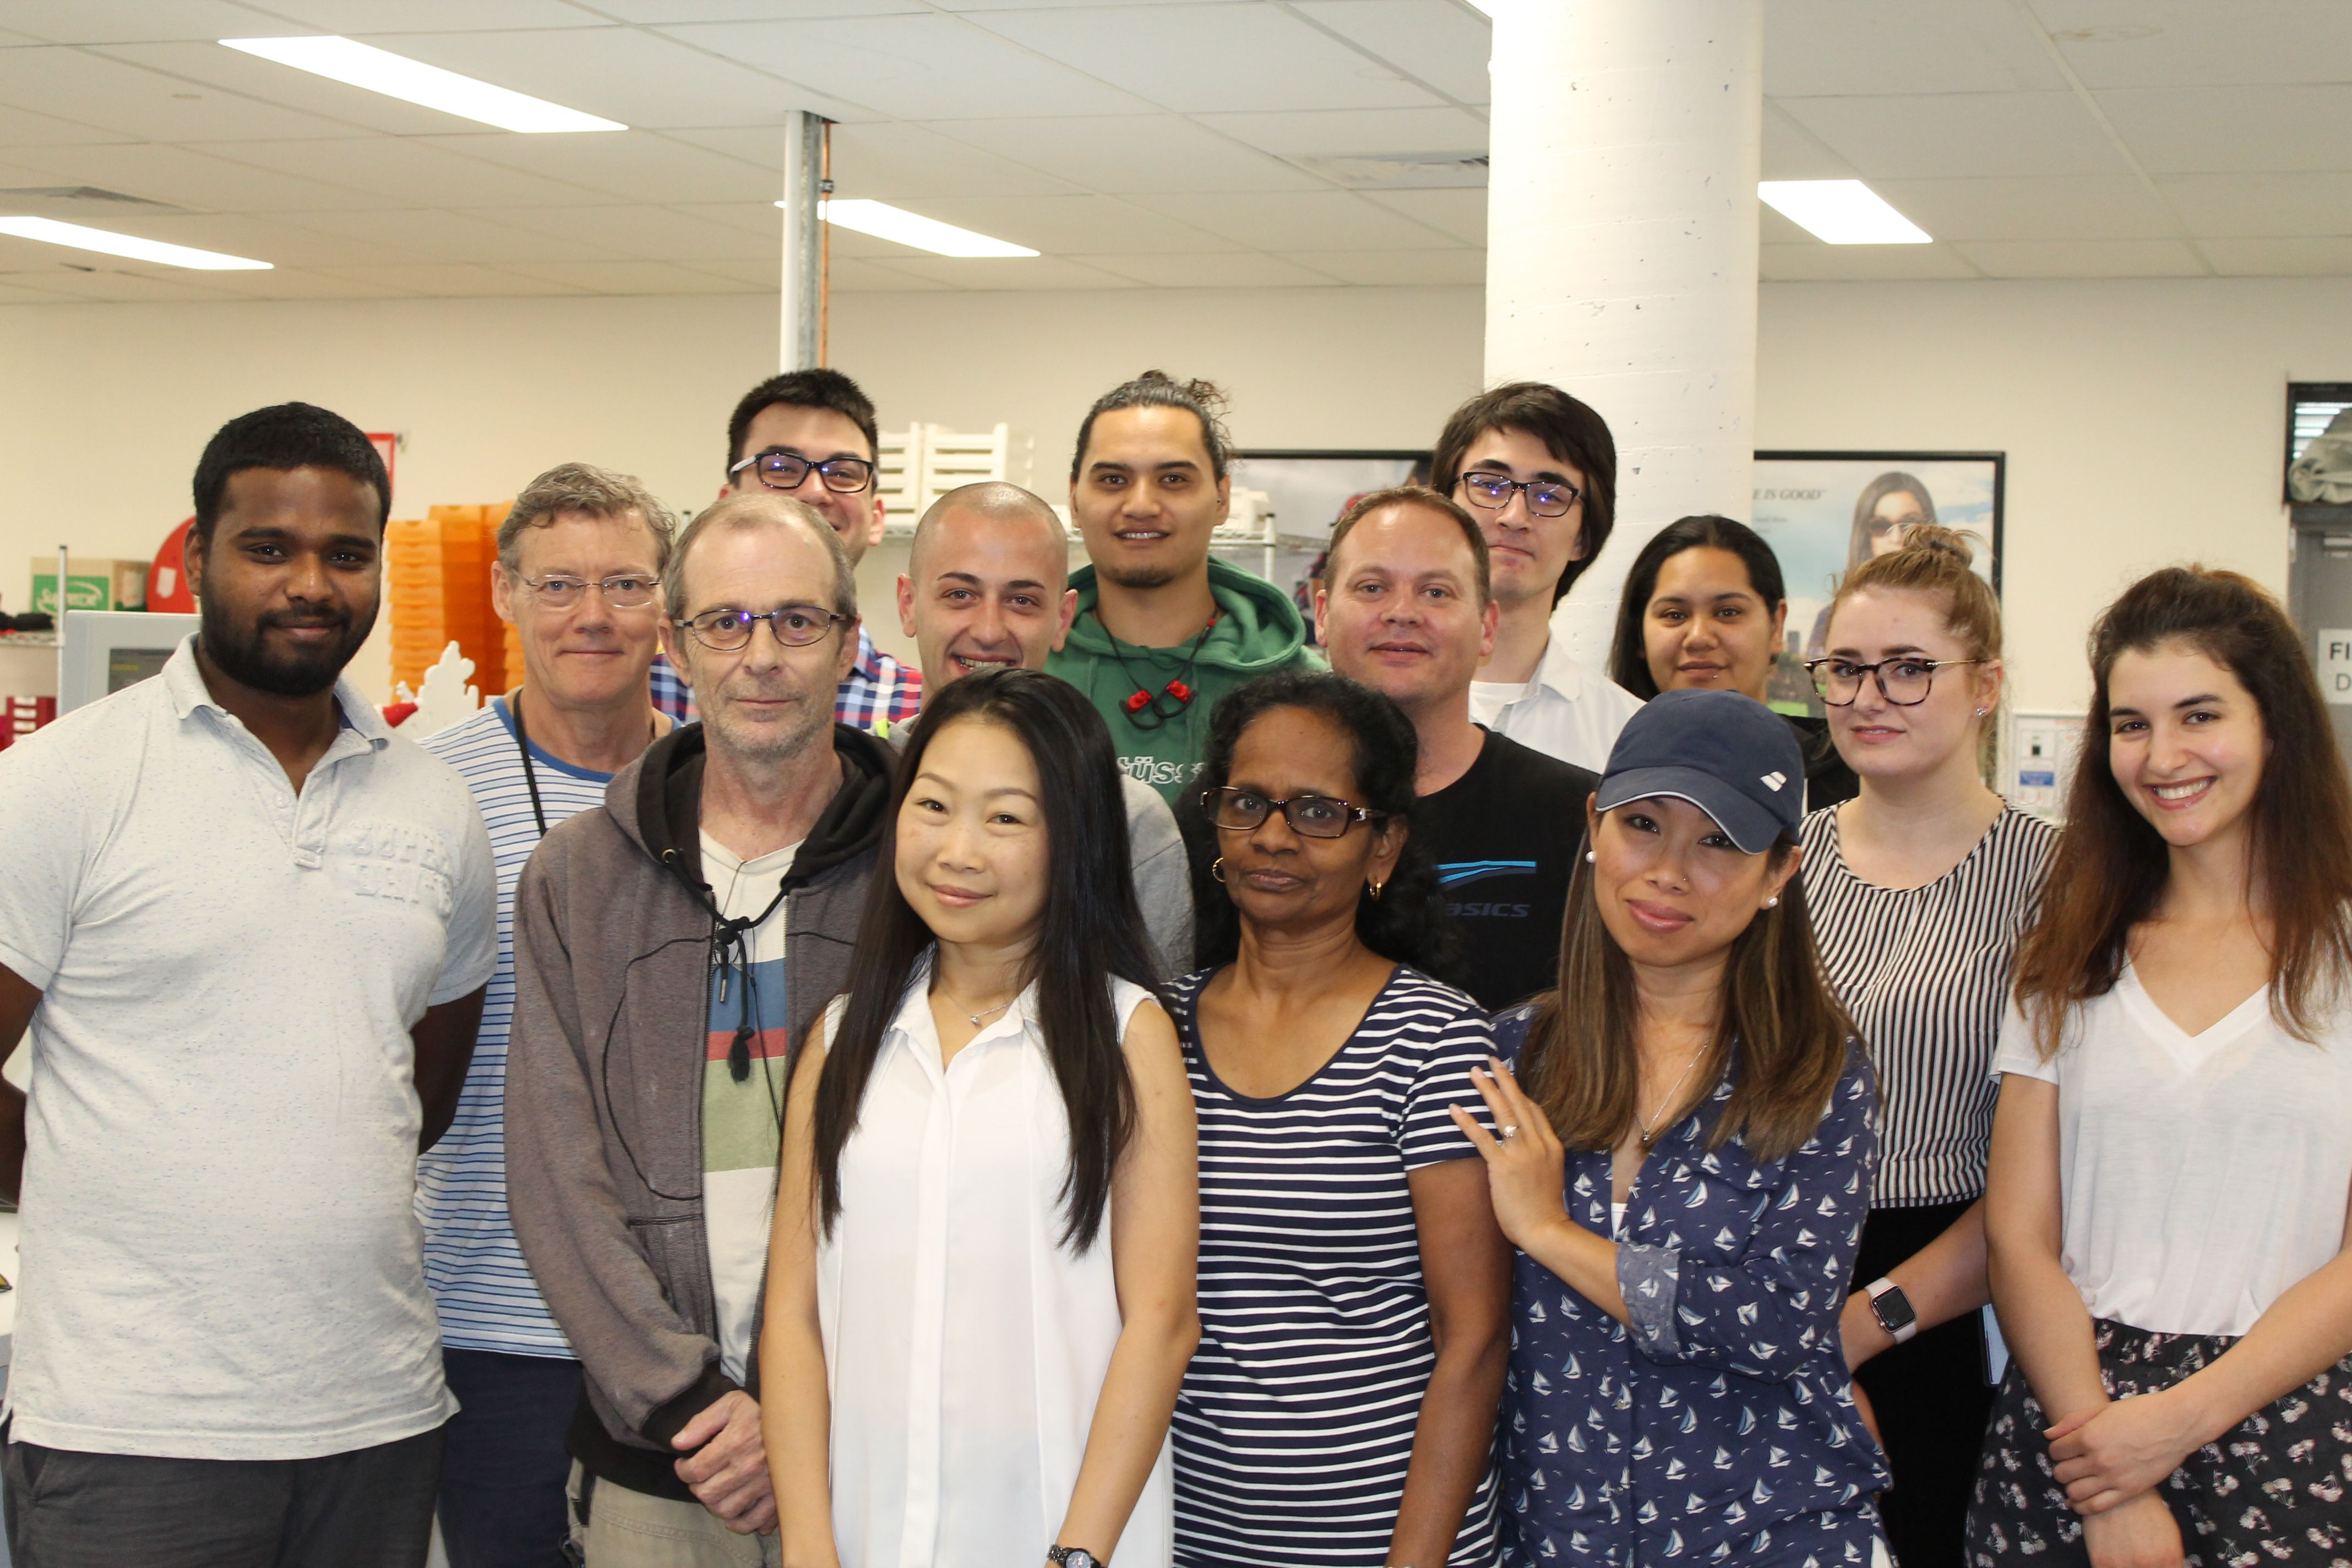 Sydney's VSP Optical Lab Team